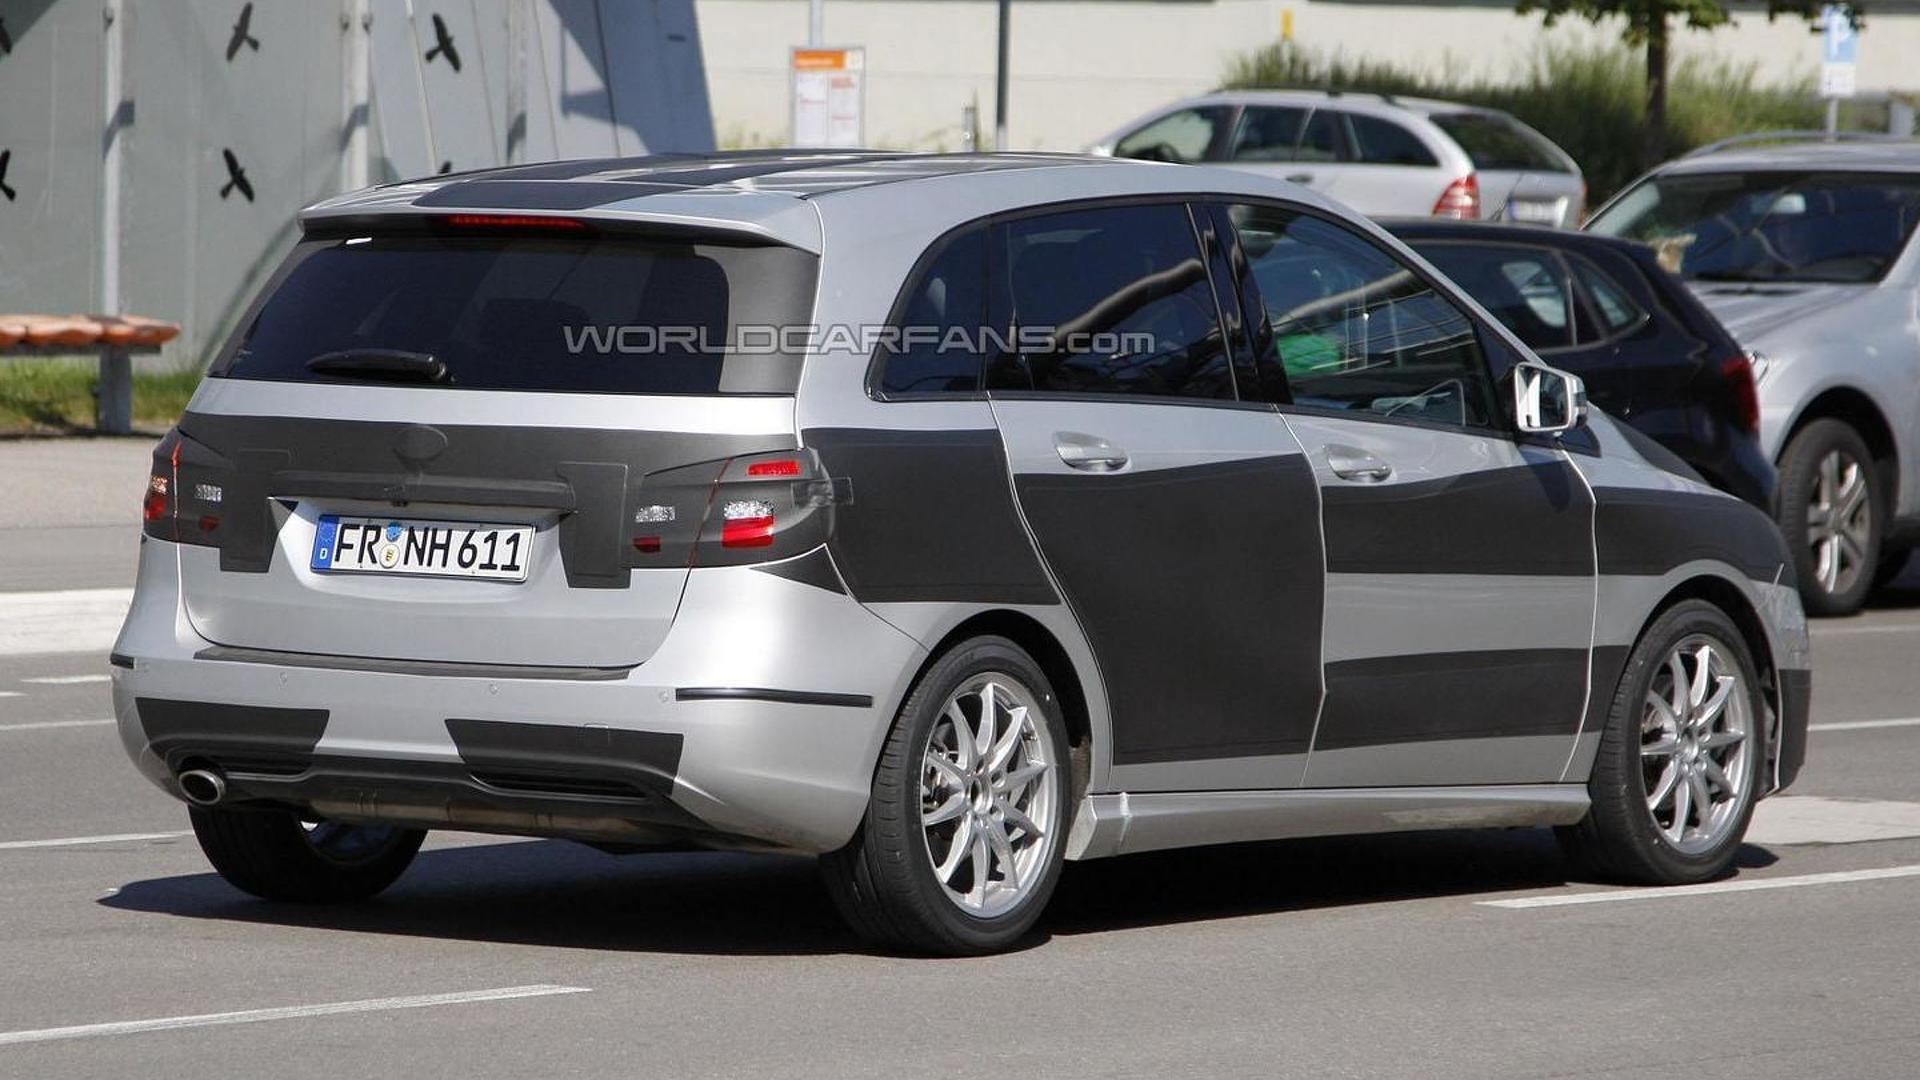 2012 Mercedes B-Class spied wearing less camouflage